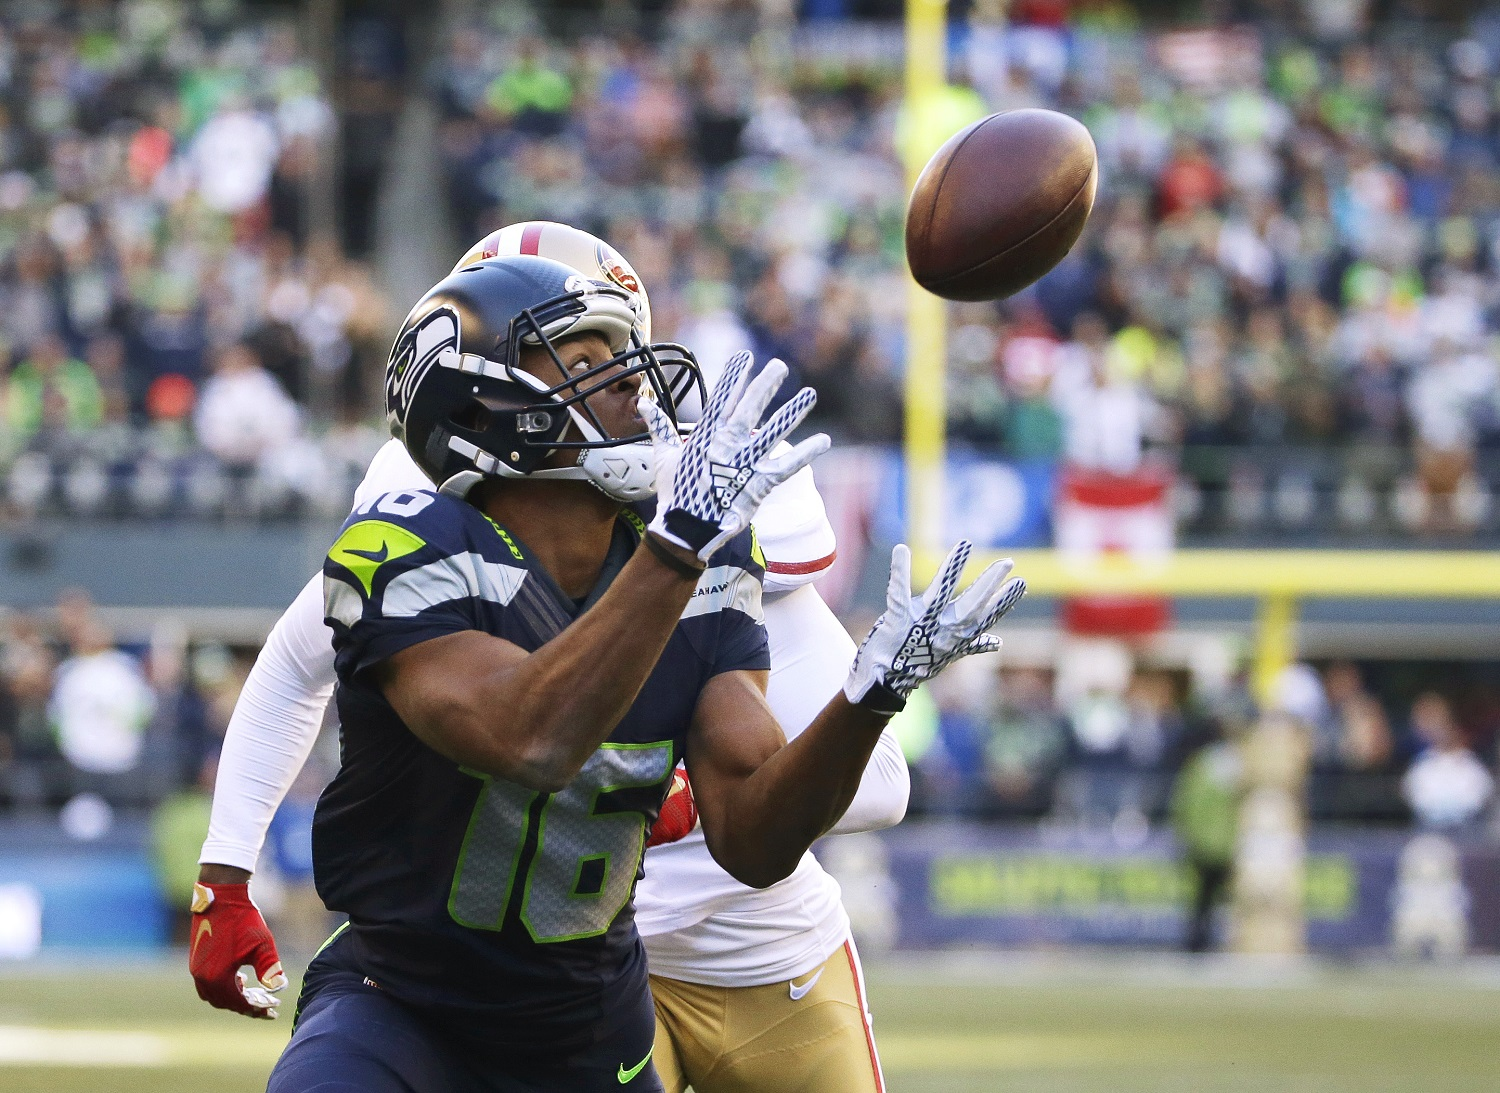 Seattle Seahawks wide receiver Tyler Lockett (16) catches a pass for a touchdown in front of San Francisco 49ers strong safety Jimmie Ward during the first half of an NFL football game, Sunday, Nov. 22, 2015, in Seattle. (AP Photo/Elaine Thompson)